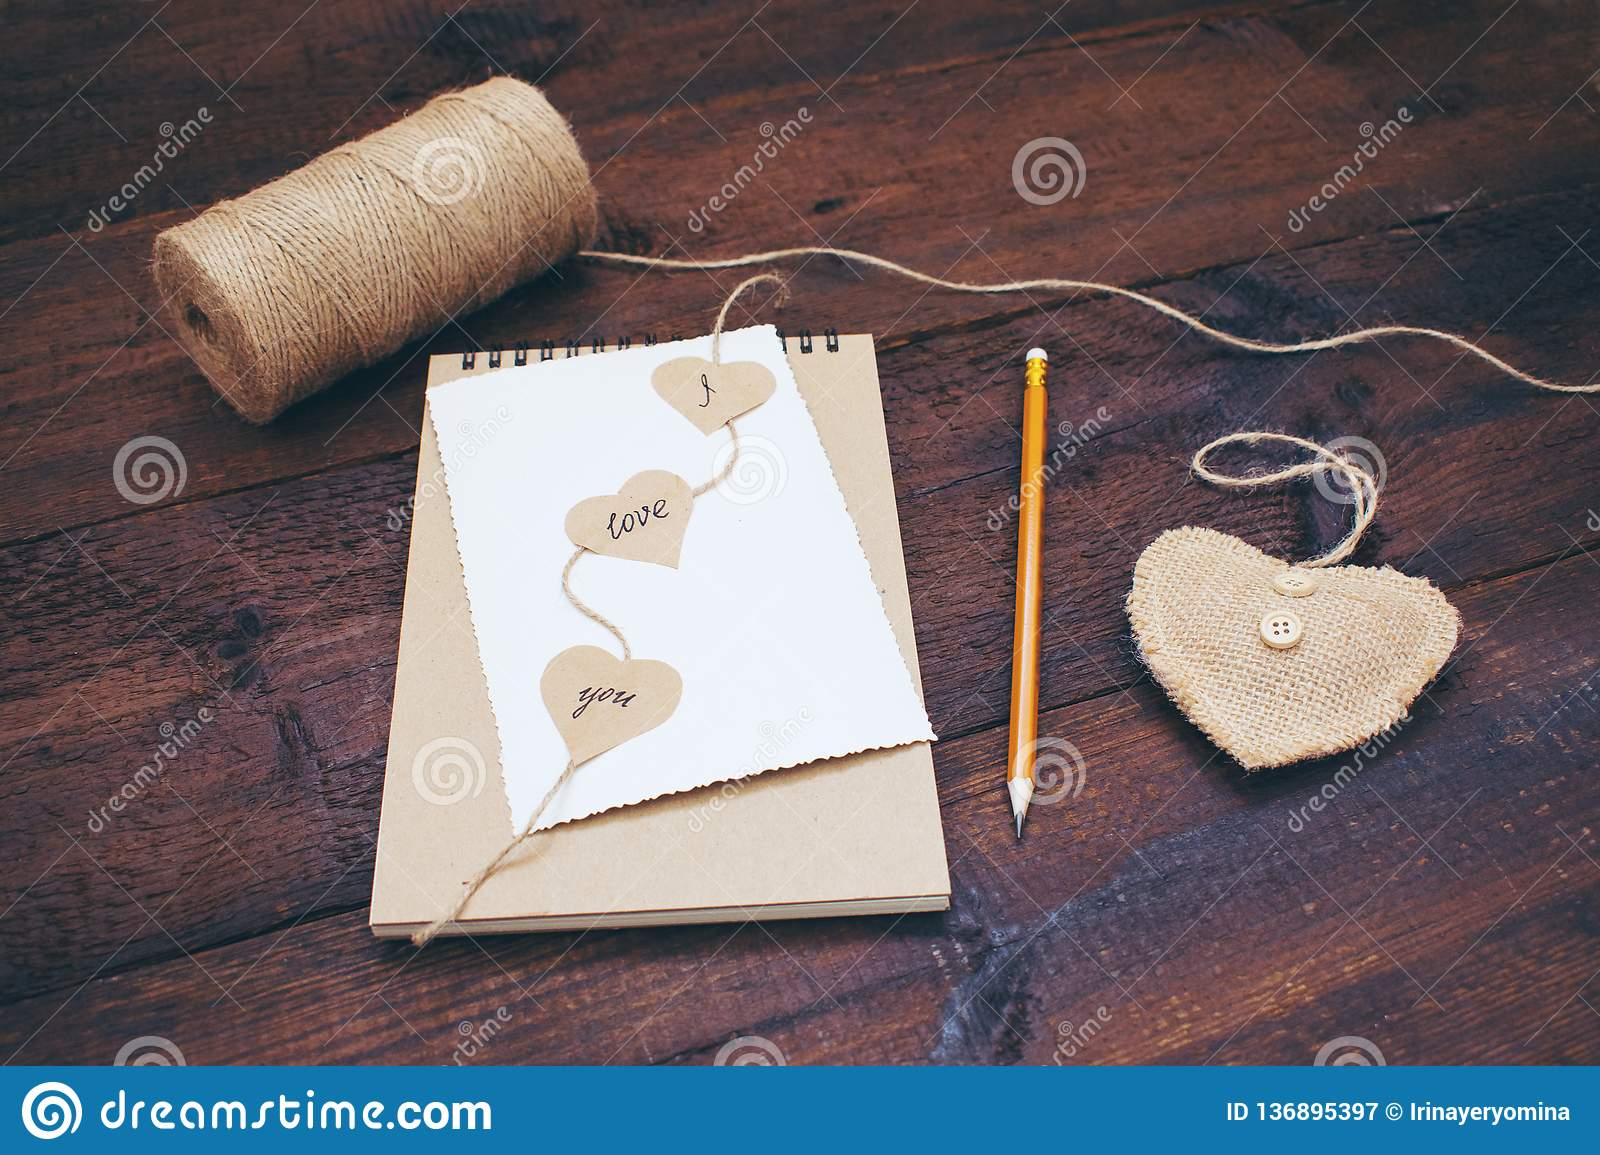 Declaration of love. Valentines day craft card ideas. Greeting card with text I LOVE YOU on craft recycled paper notebook, pencil